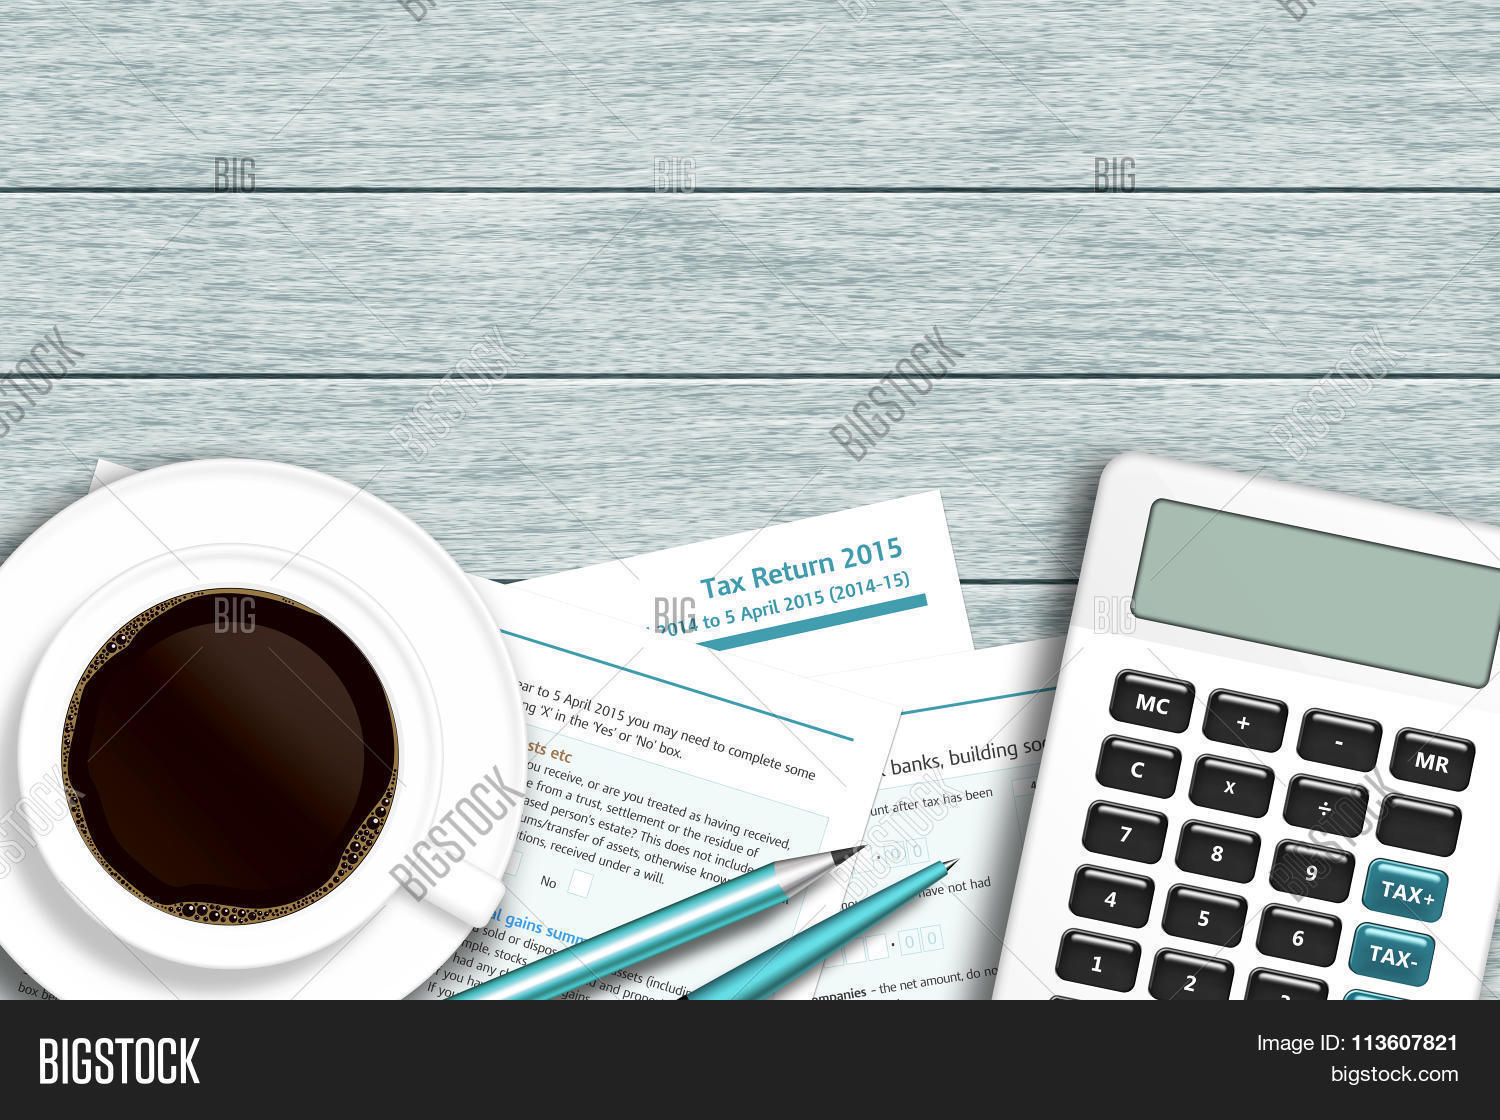 Uk Tax Form Calculator Image Photo Free Trial Bigstock